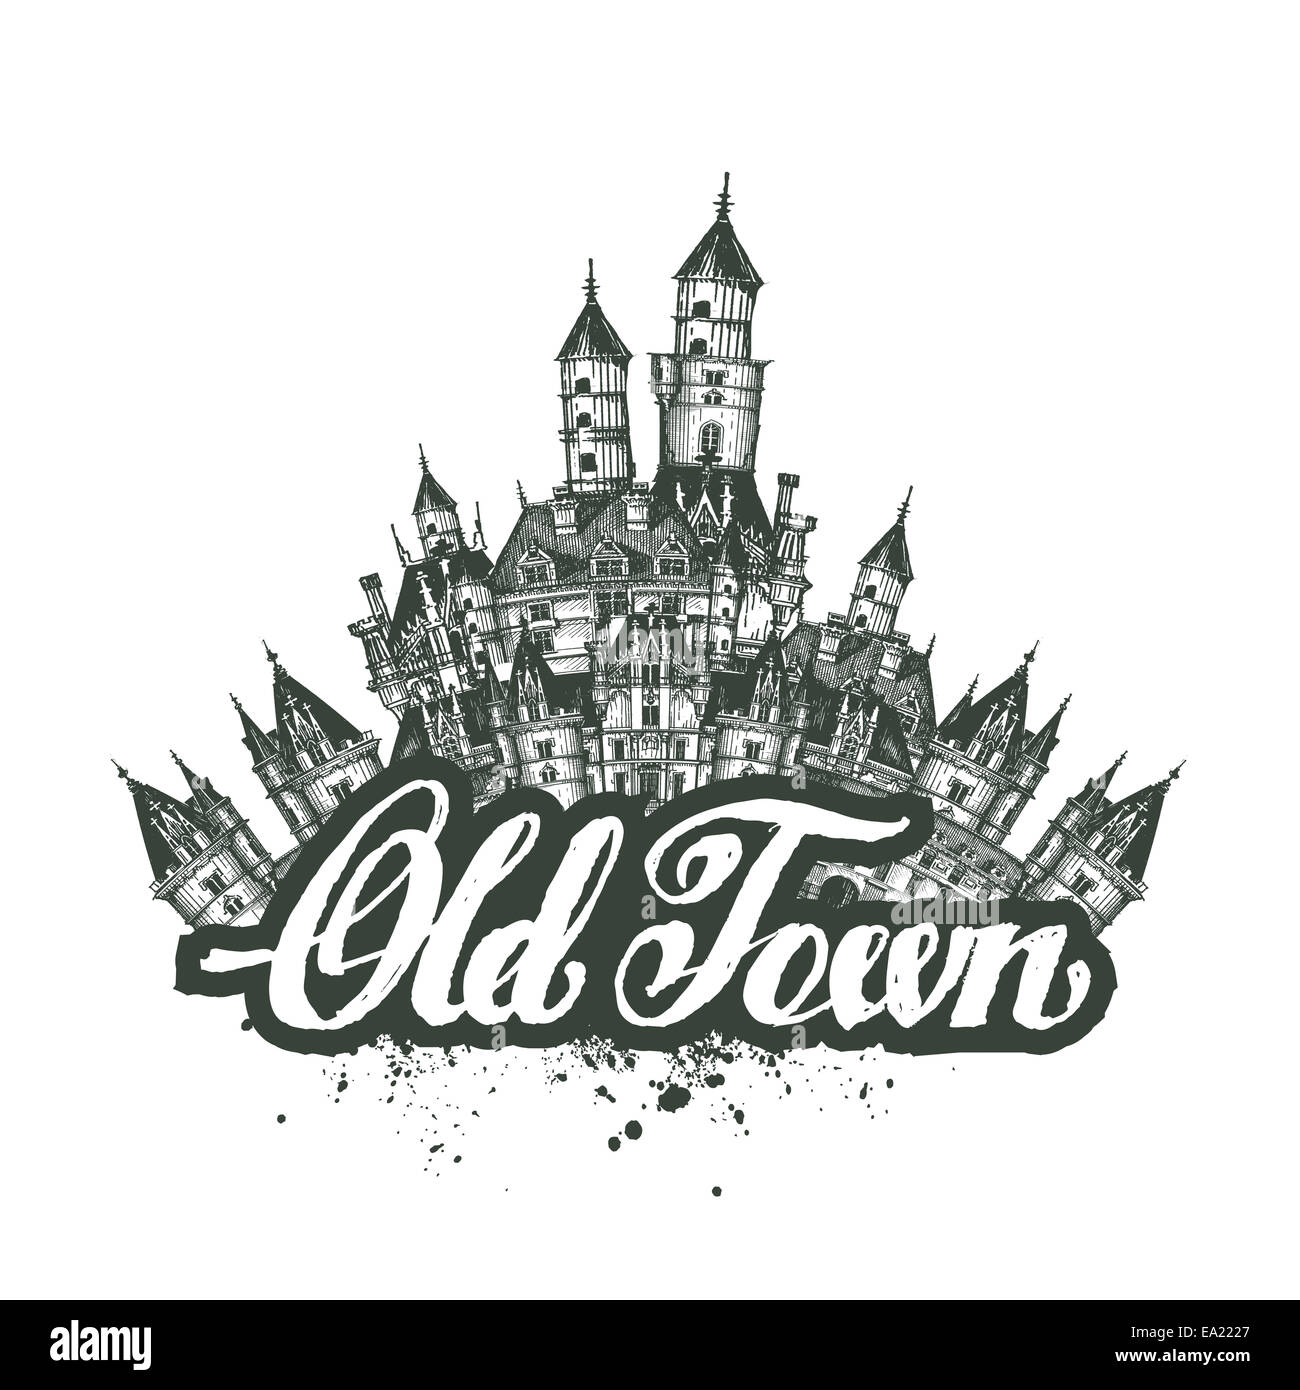 Old Town. Vector illustration, sketch, artwork - Stock Image